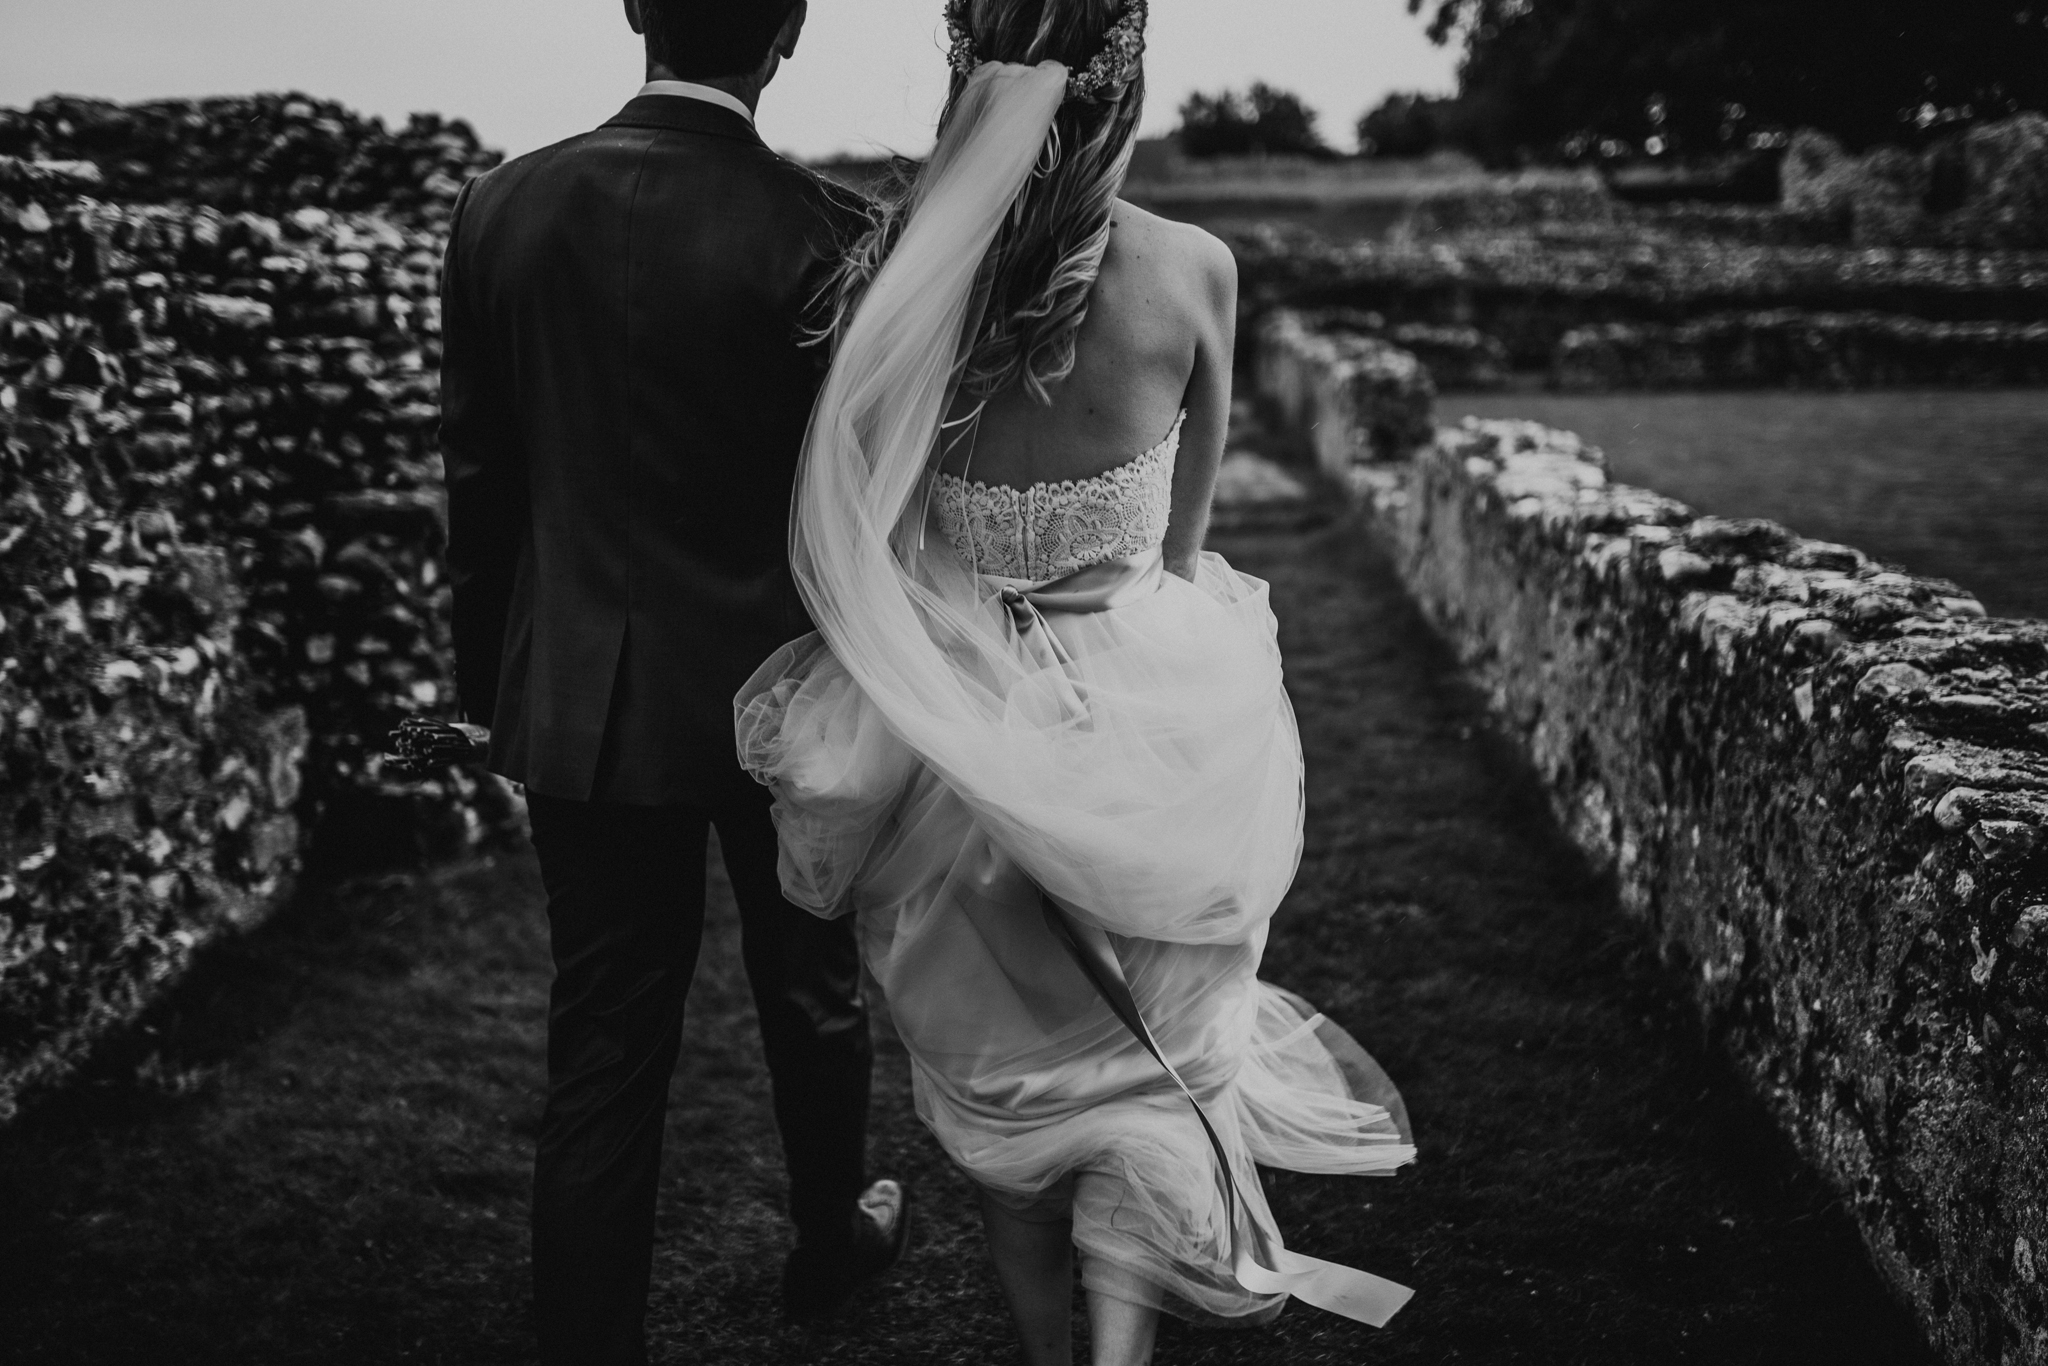 Hannah-Gerrard-Norfolk-Wedding-Back-to-the-Garden-Holt-Wells-Photography-Darina-Stoda-56.jpg